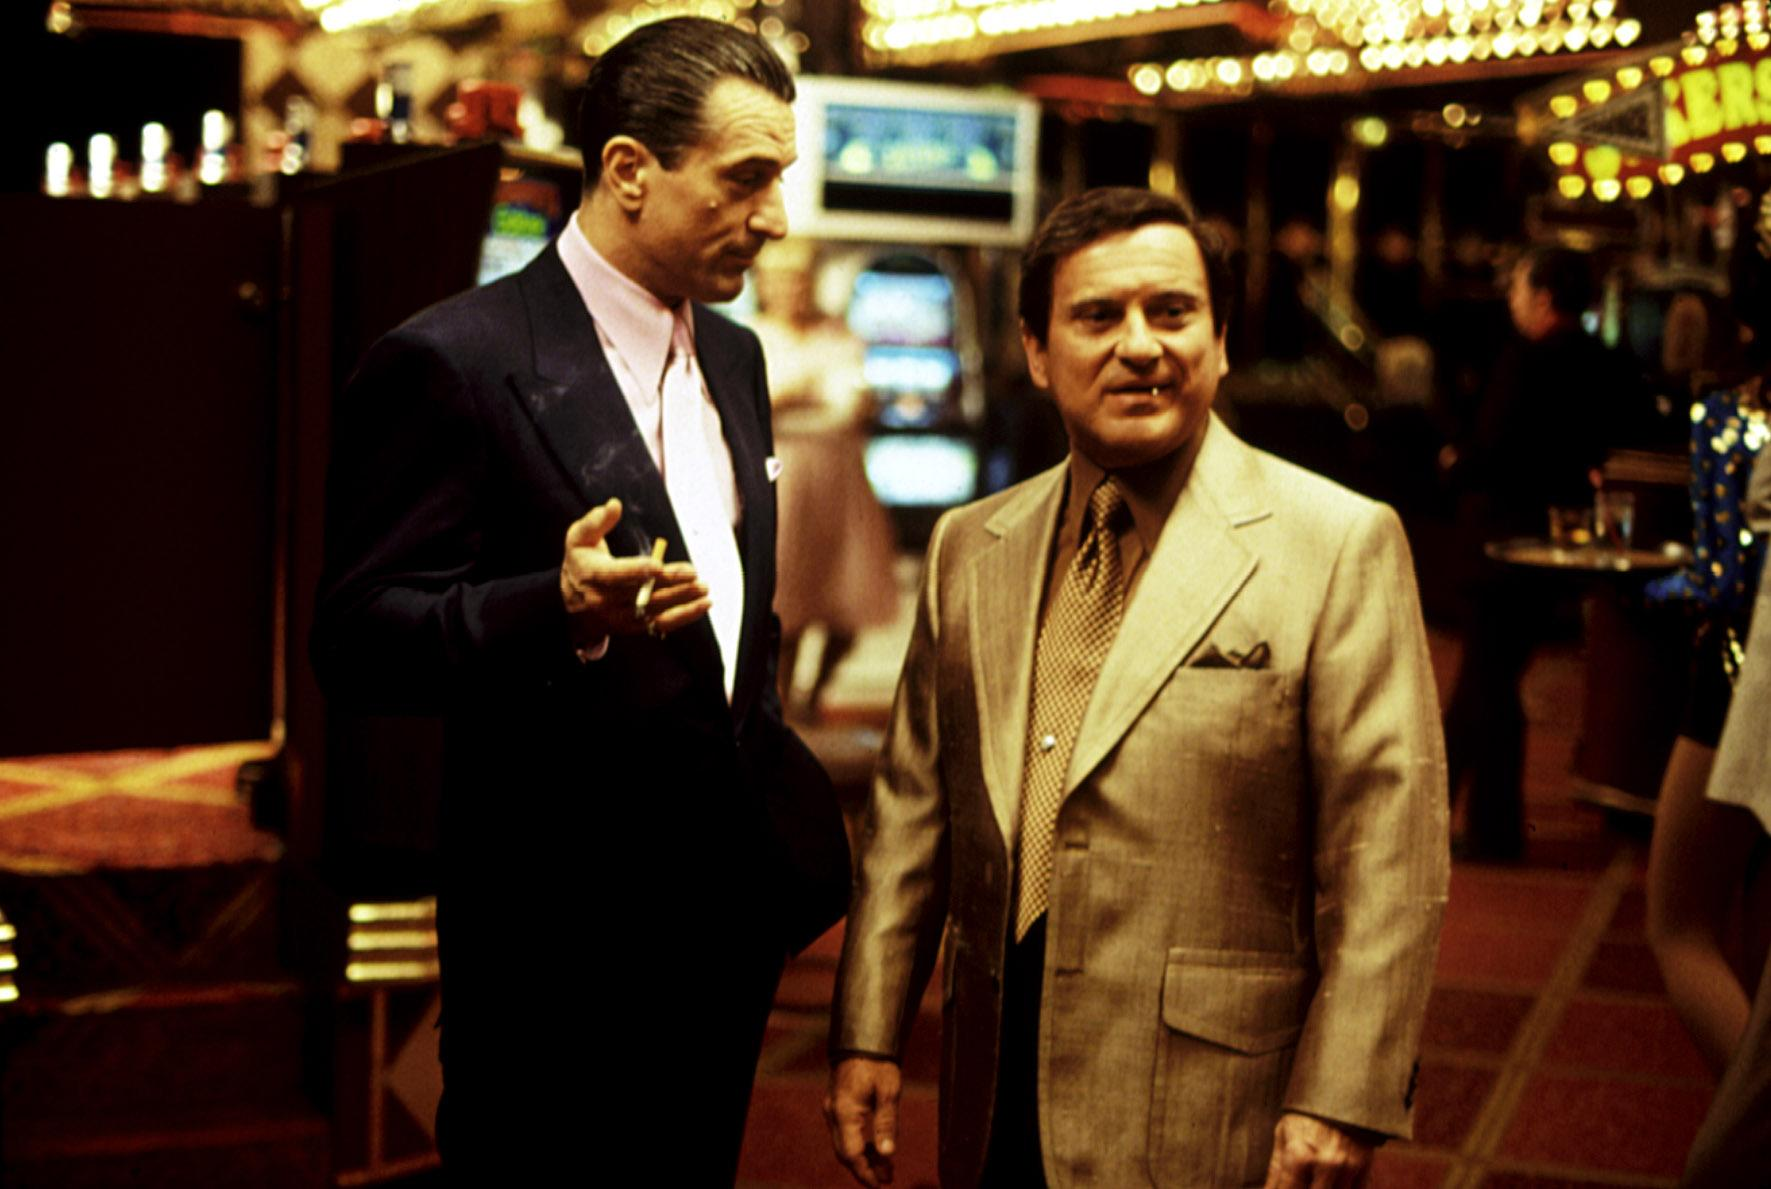 Robert De Niro and Joe Pesci in Scoresese's 1995 epic, 'Casino' (Photo: Universal/Courtesy Everett Collection)